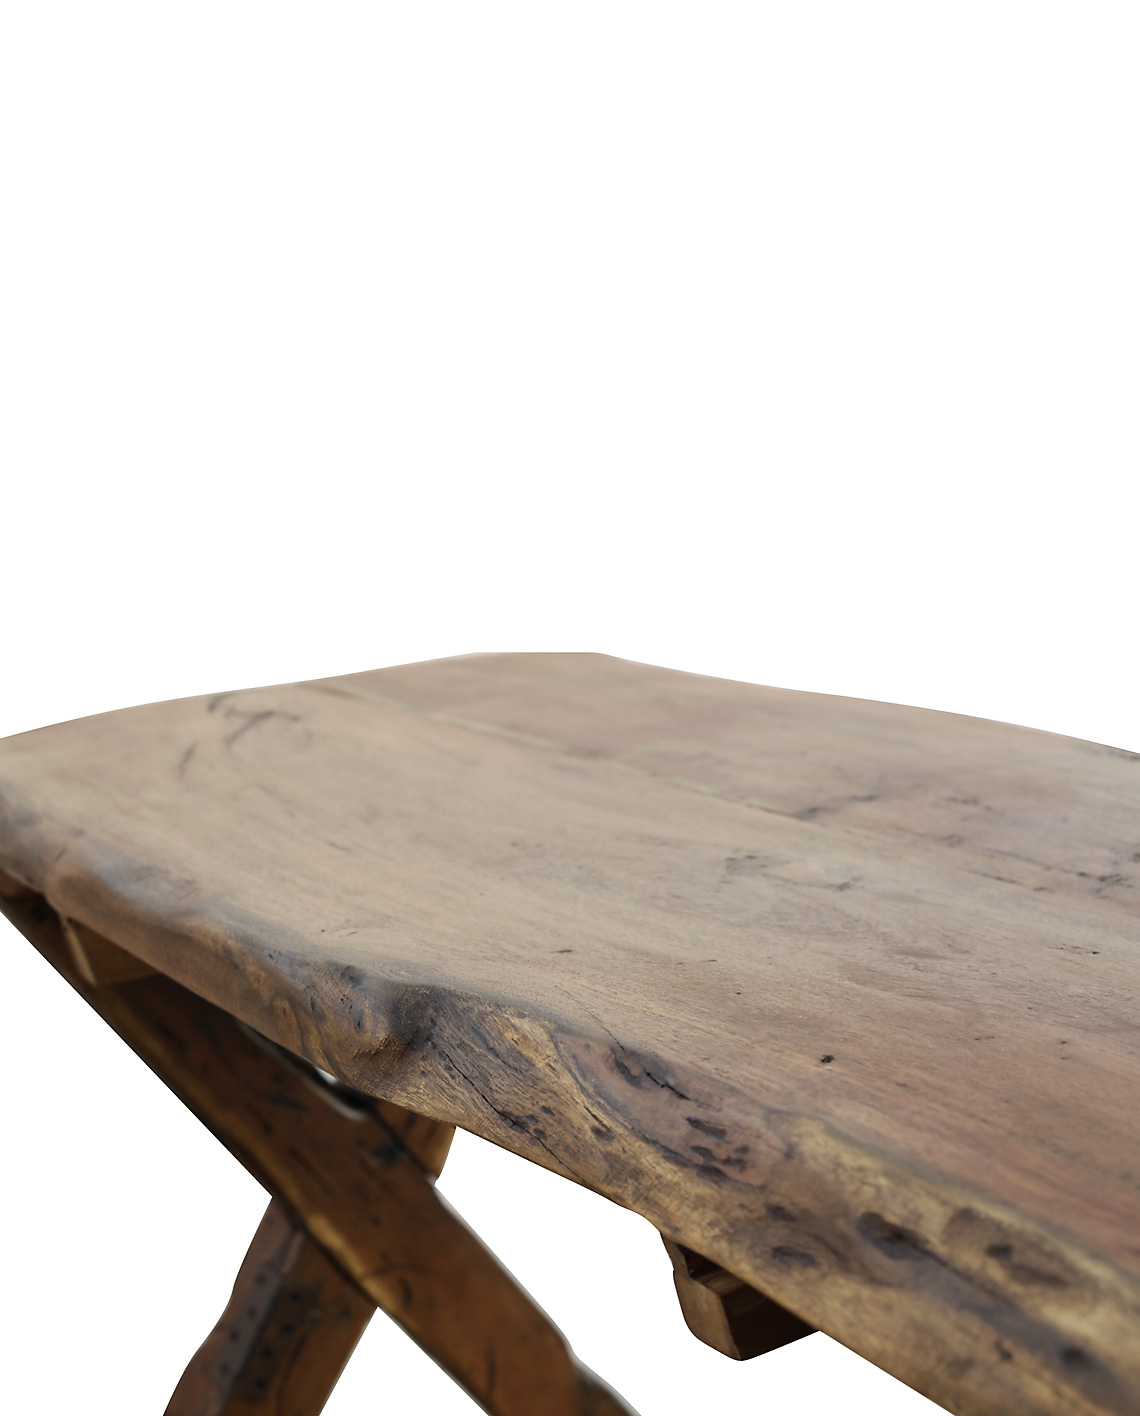 mesquite-desk-rustic-top-live-edge